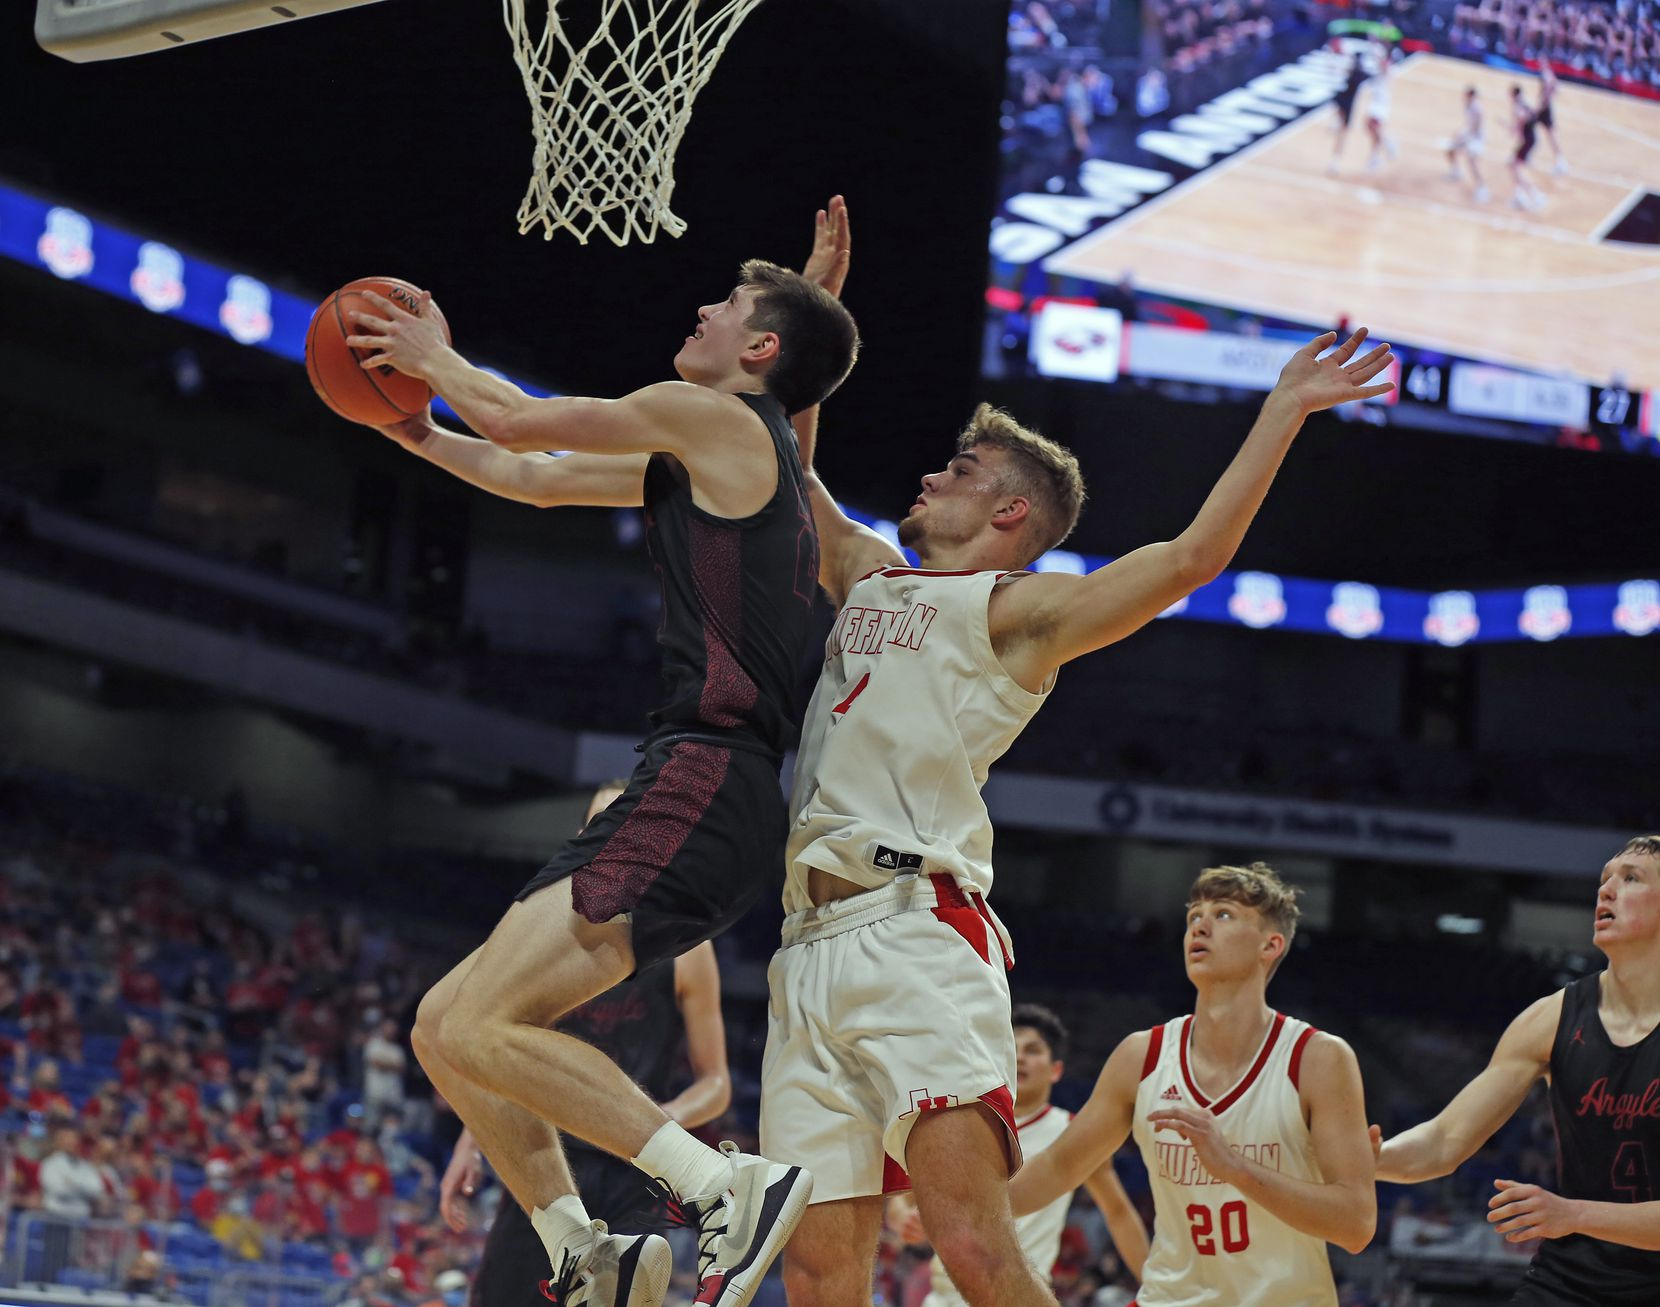 Argyle Eli Valentino #23 shoots  reverse layup on Huffman Hargrave Luke Thomas #4. UIL boys Class 4A basketball state championship game between Argyle and Hargrave on Saturday, March 13, 2021 at the Alamodome.